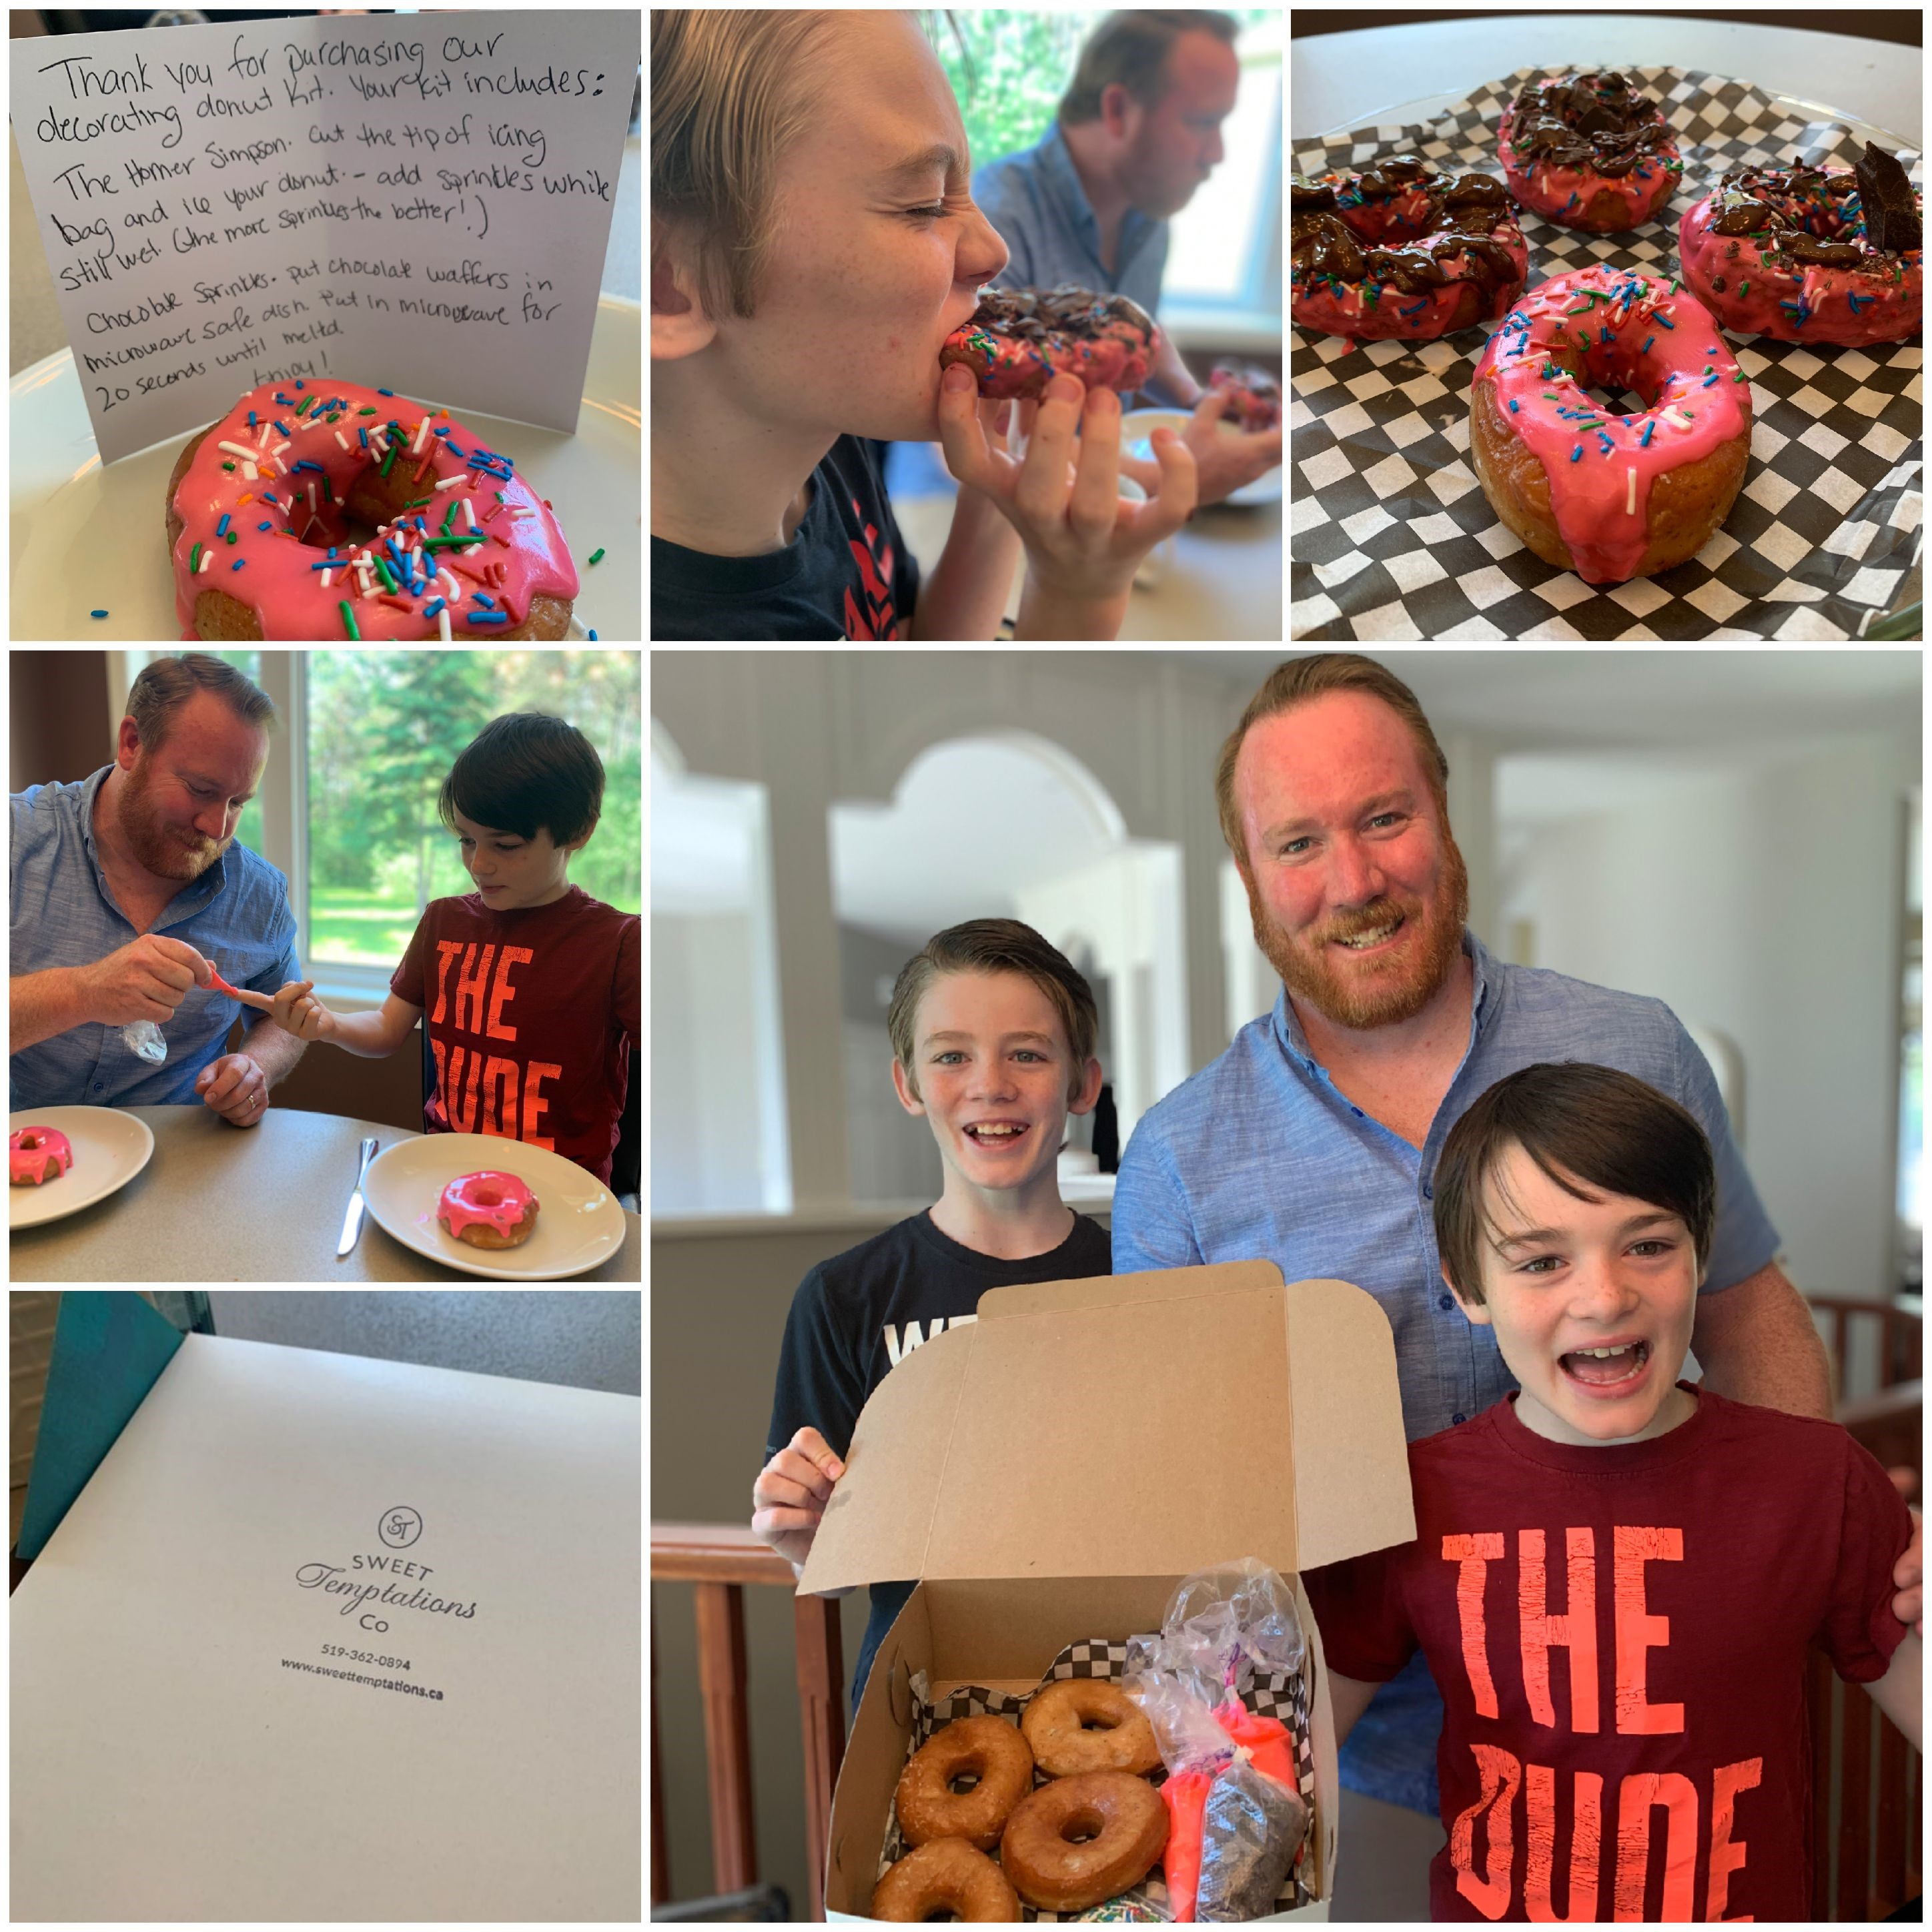 Collage of family photos. Father and two boys decorating doughnuts.